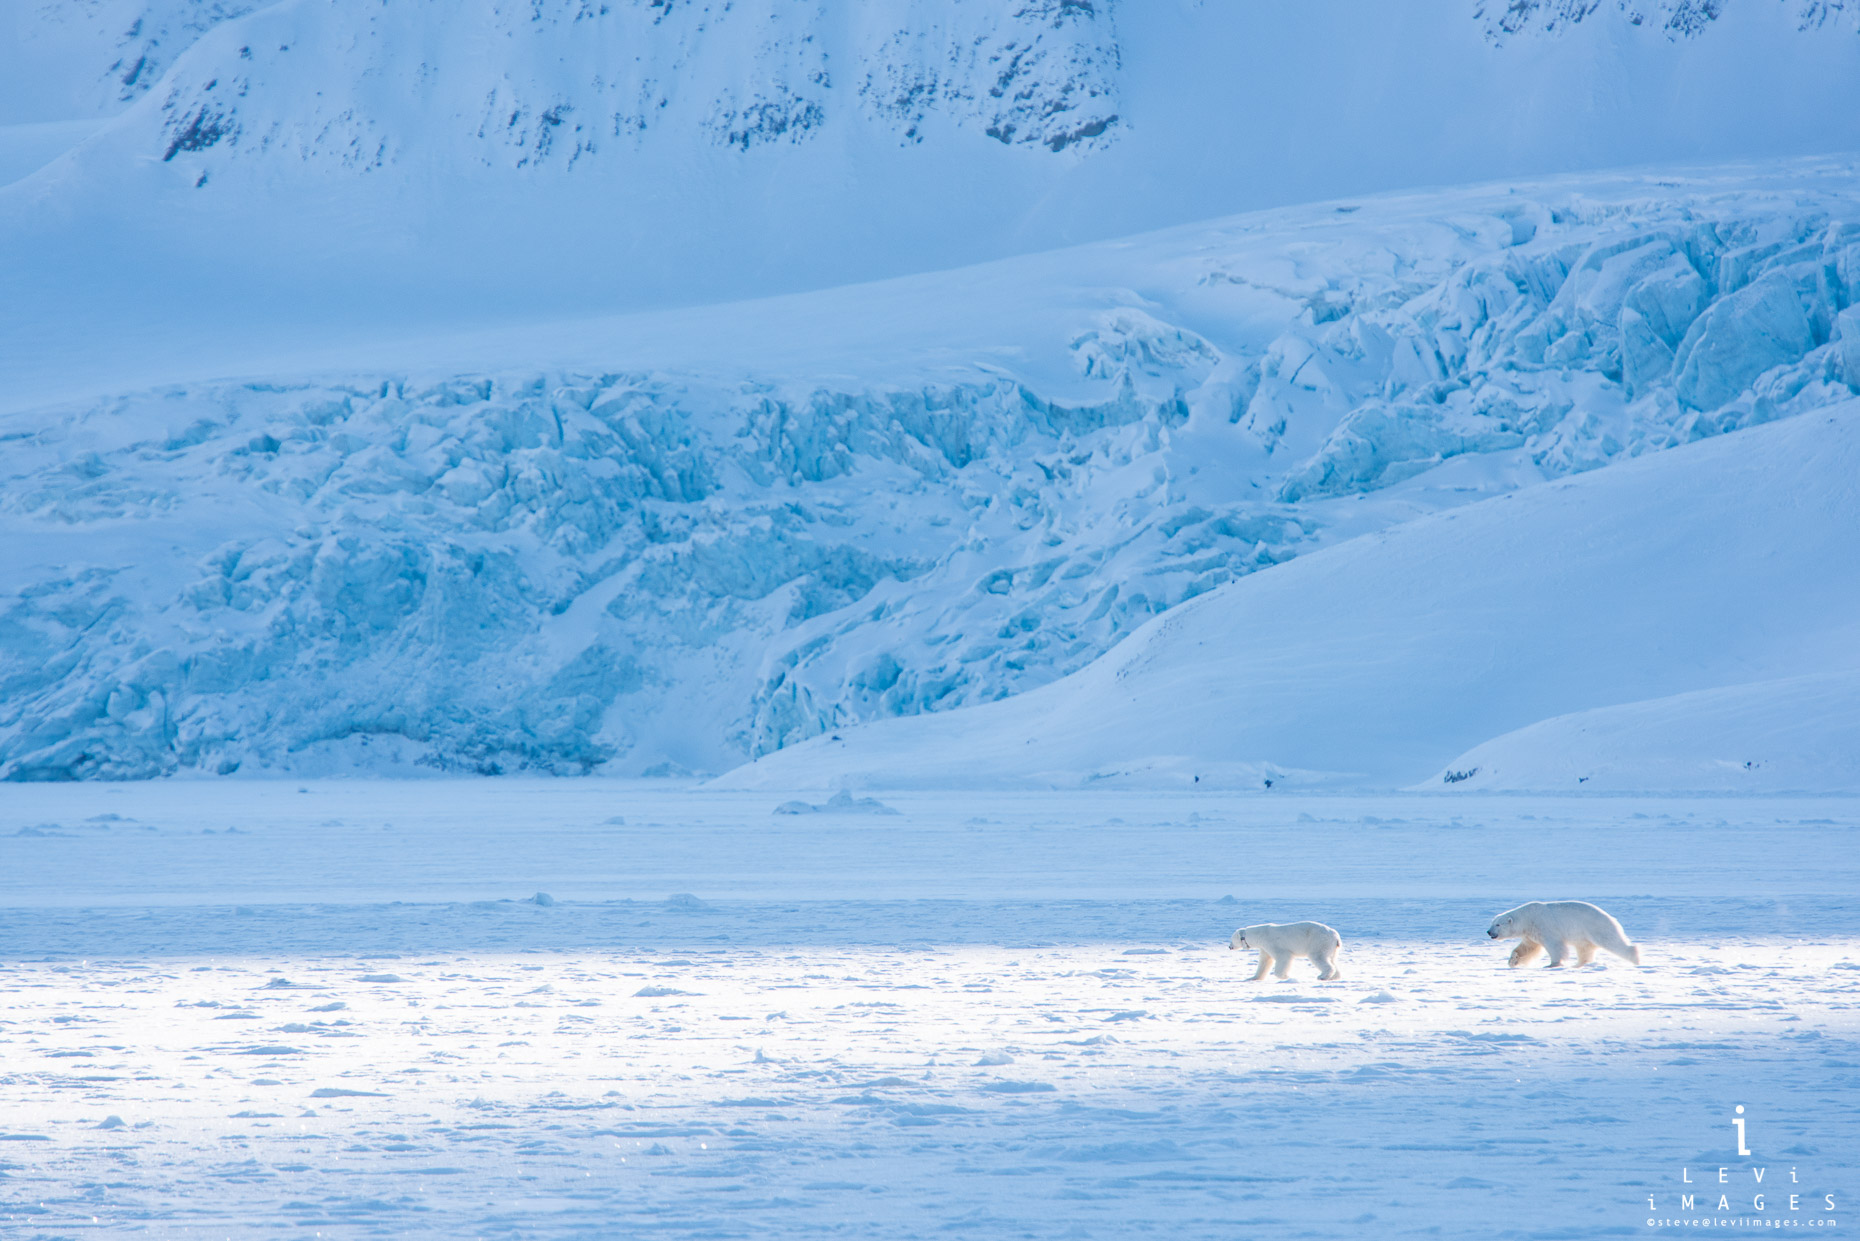 Polar bear (Ursus maritimus) chases mate in front of snow-covered glacier. Svalbard, Norway